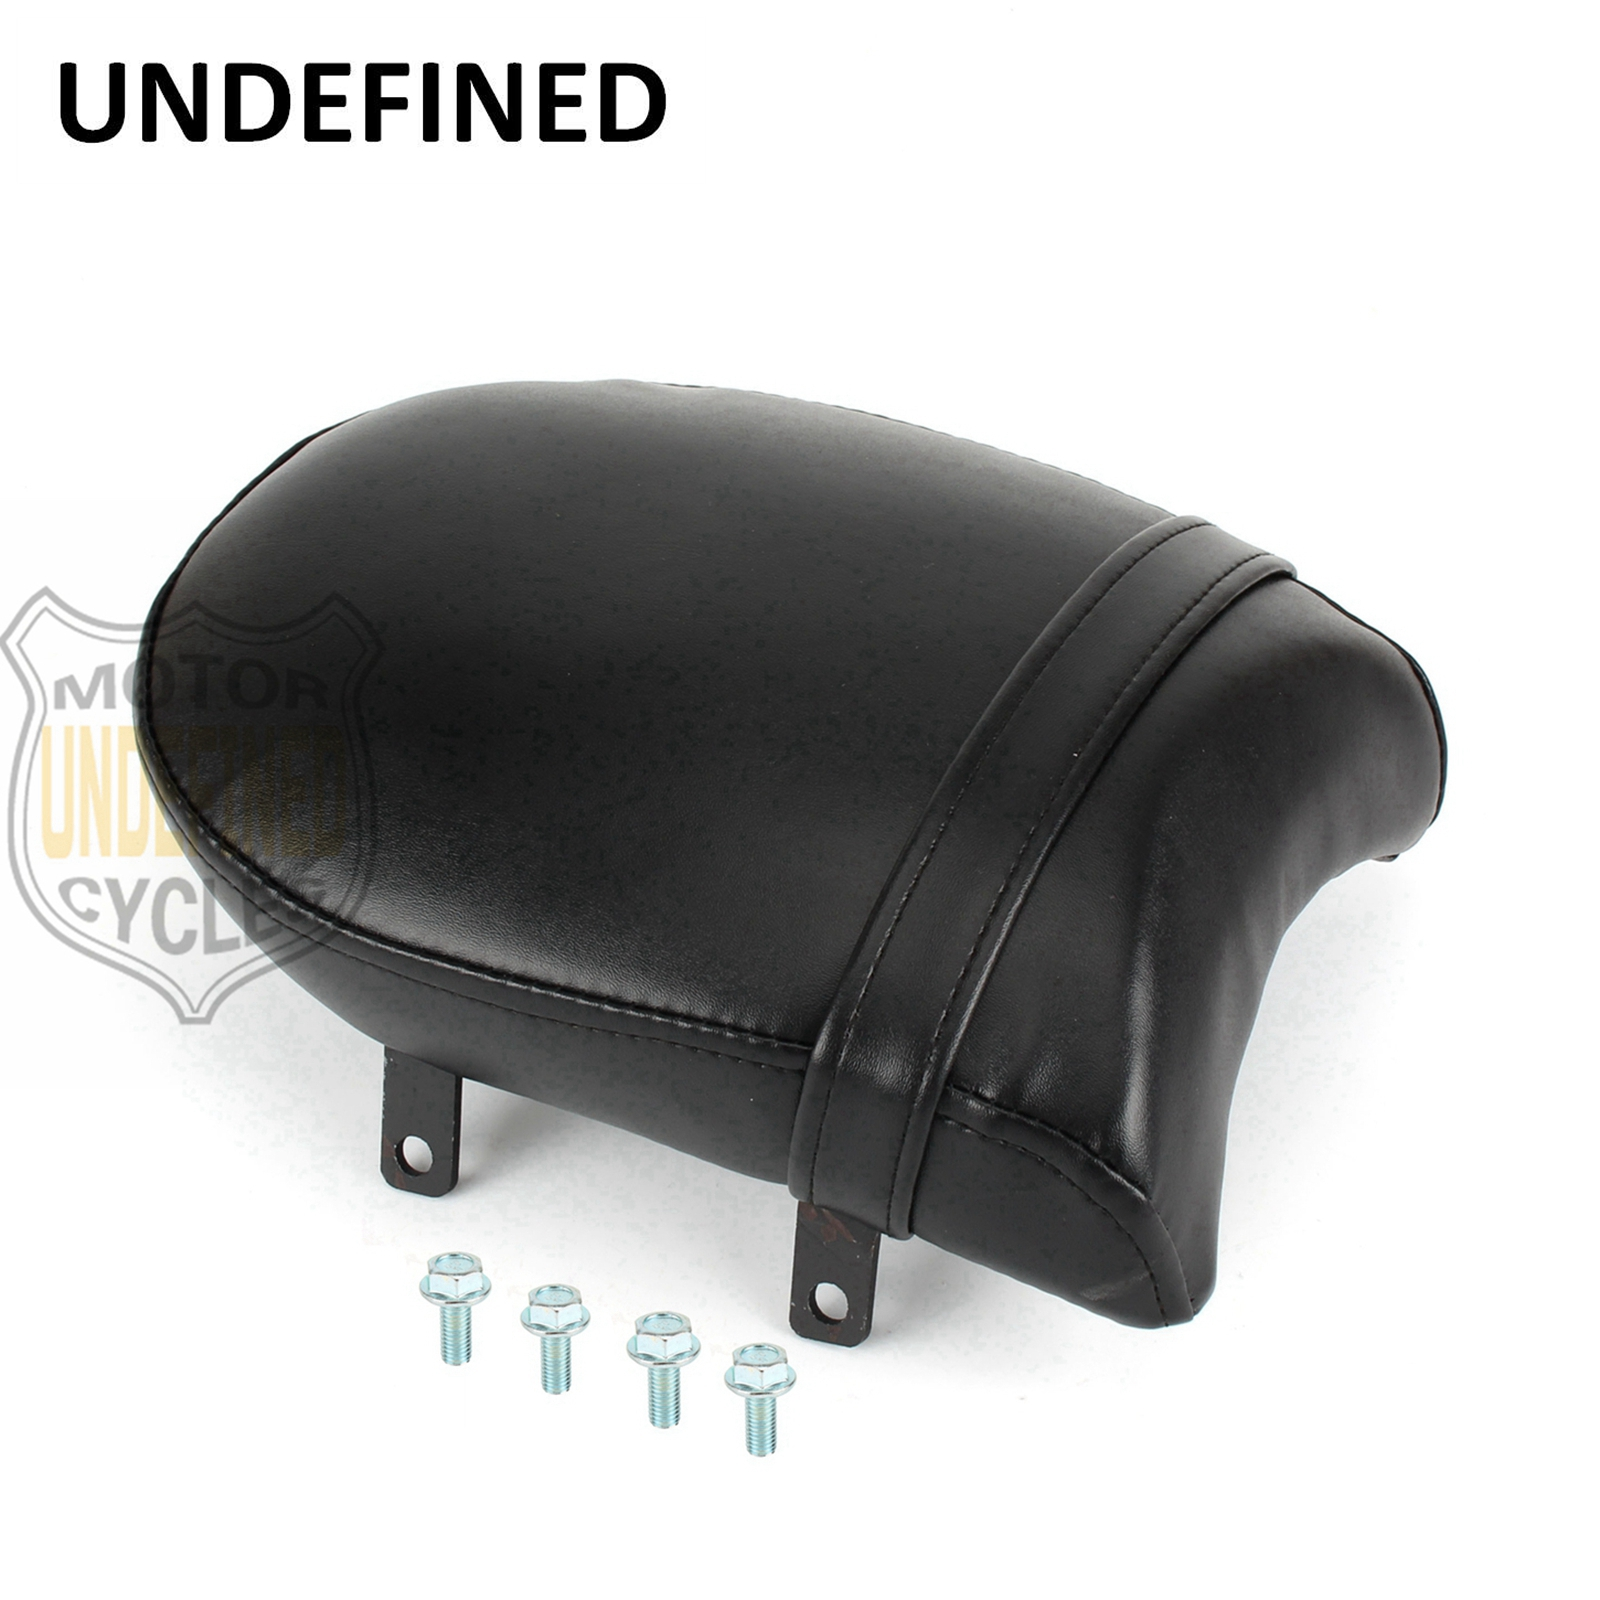 Motorbike Accessories Black Leather Rear Passenger Pillion Pad Seat For Victory High-Ball Vegas Low Kingpin 8-Ball UNDEFINED